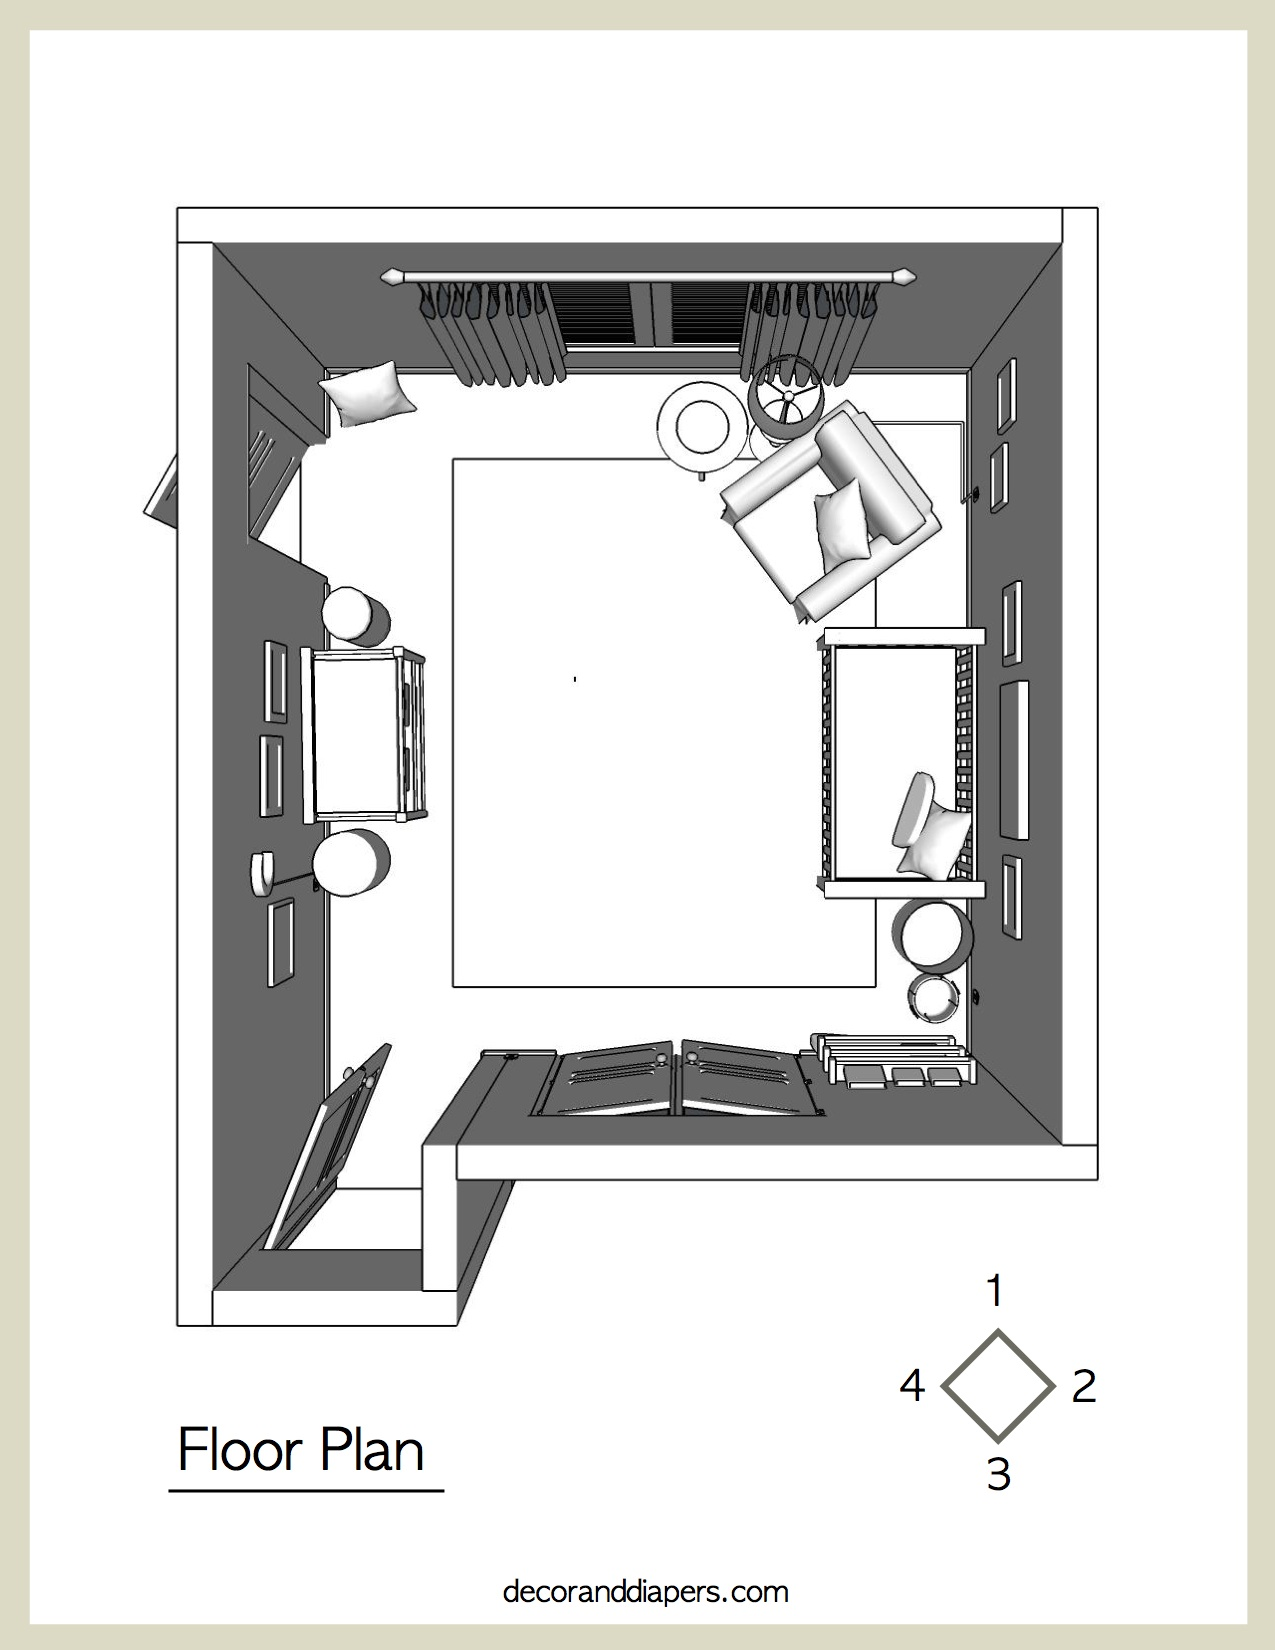 View your furniture layout to scale, true to size, according to your room dimensions